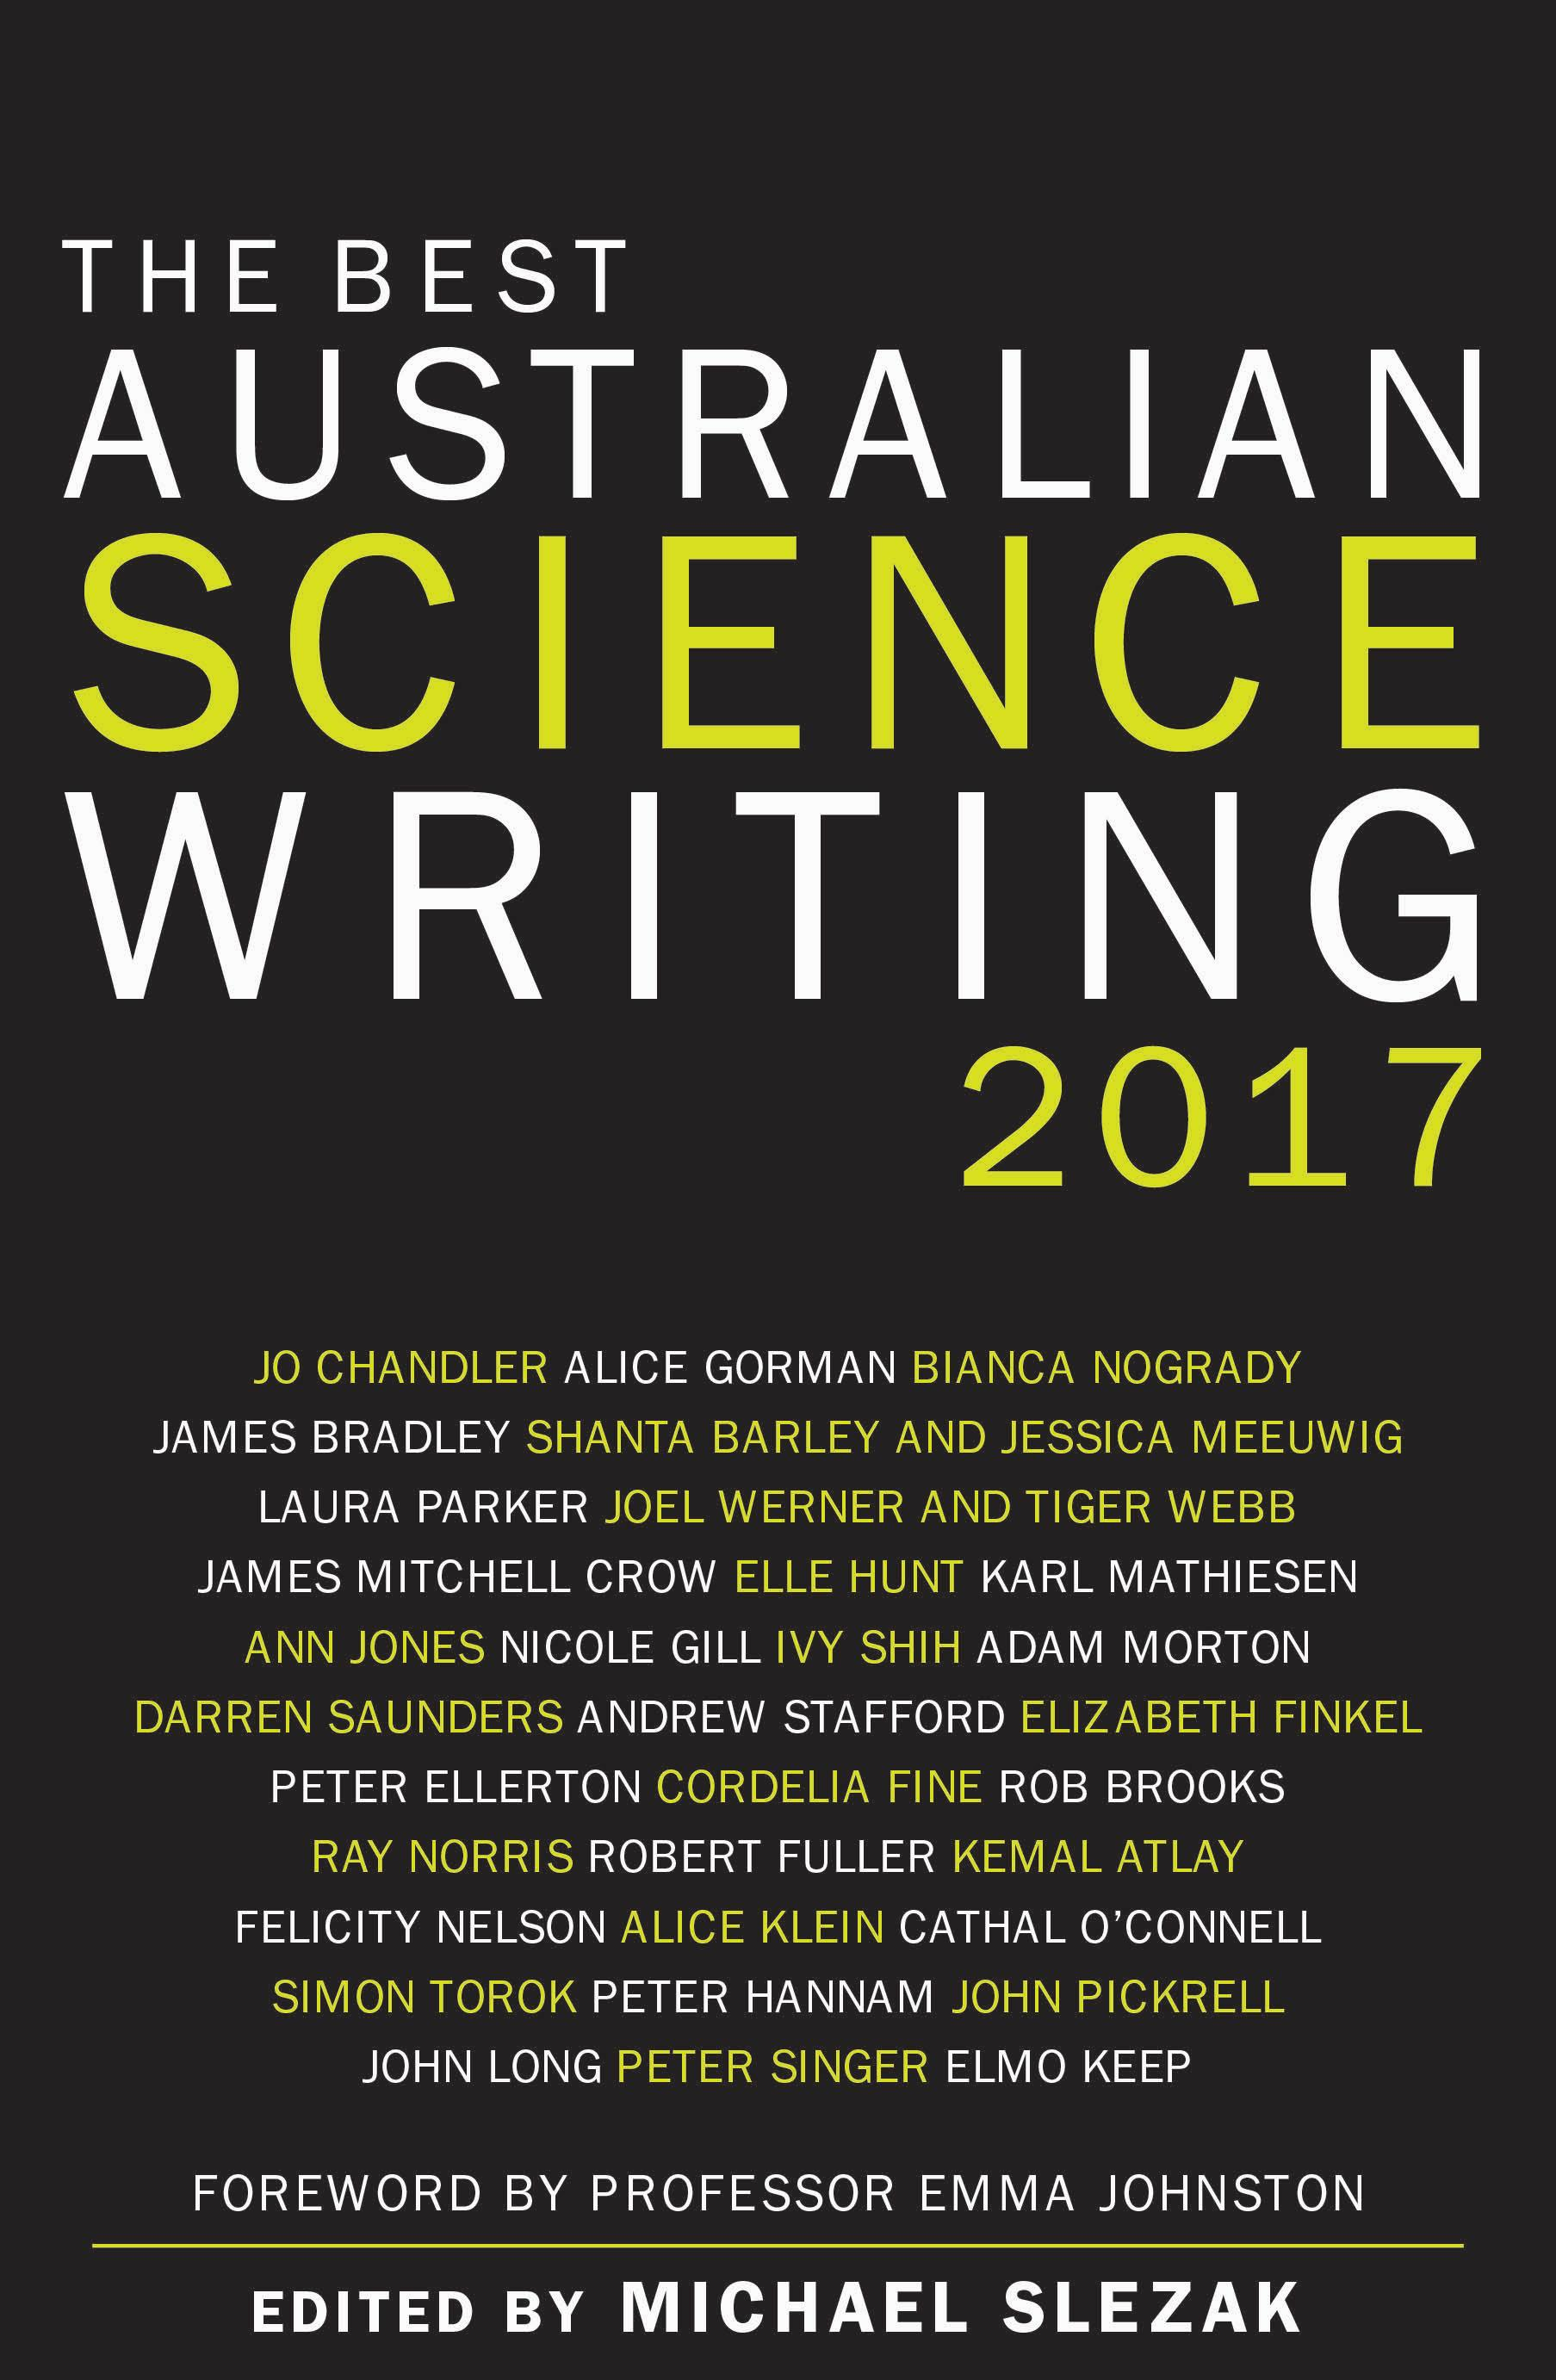 The Best Australian Science Writing 2017